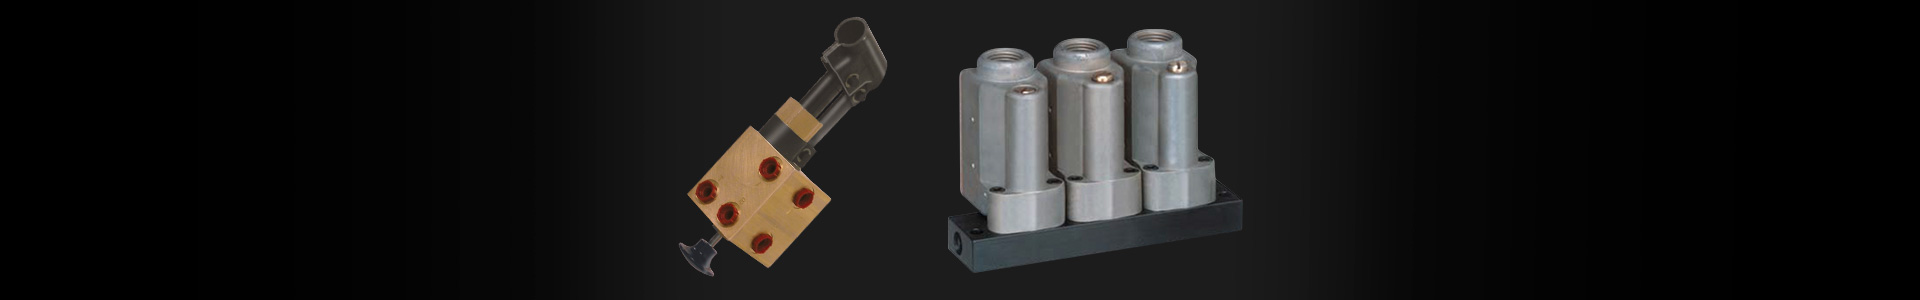 Hand Pumps & Pressure Switches (Formerly Parker)